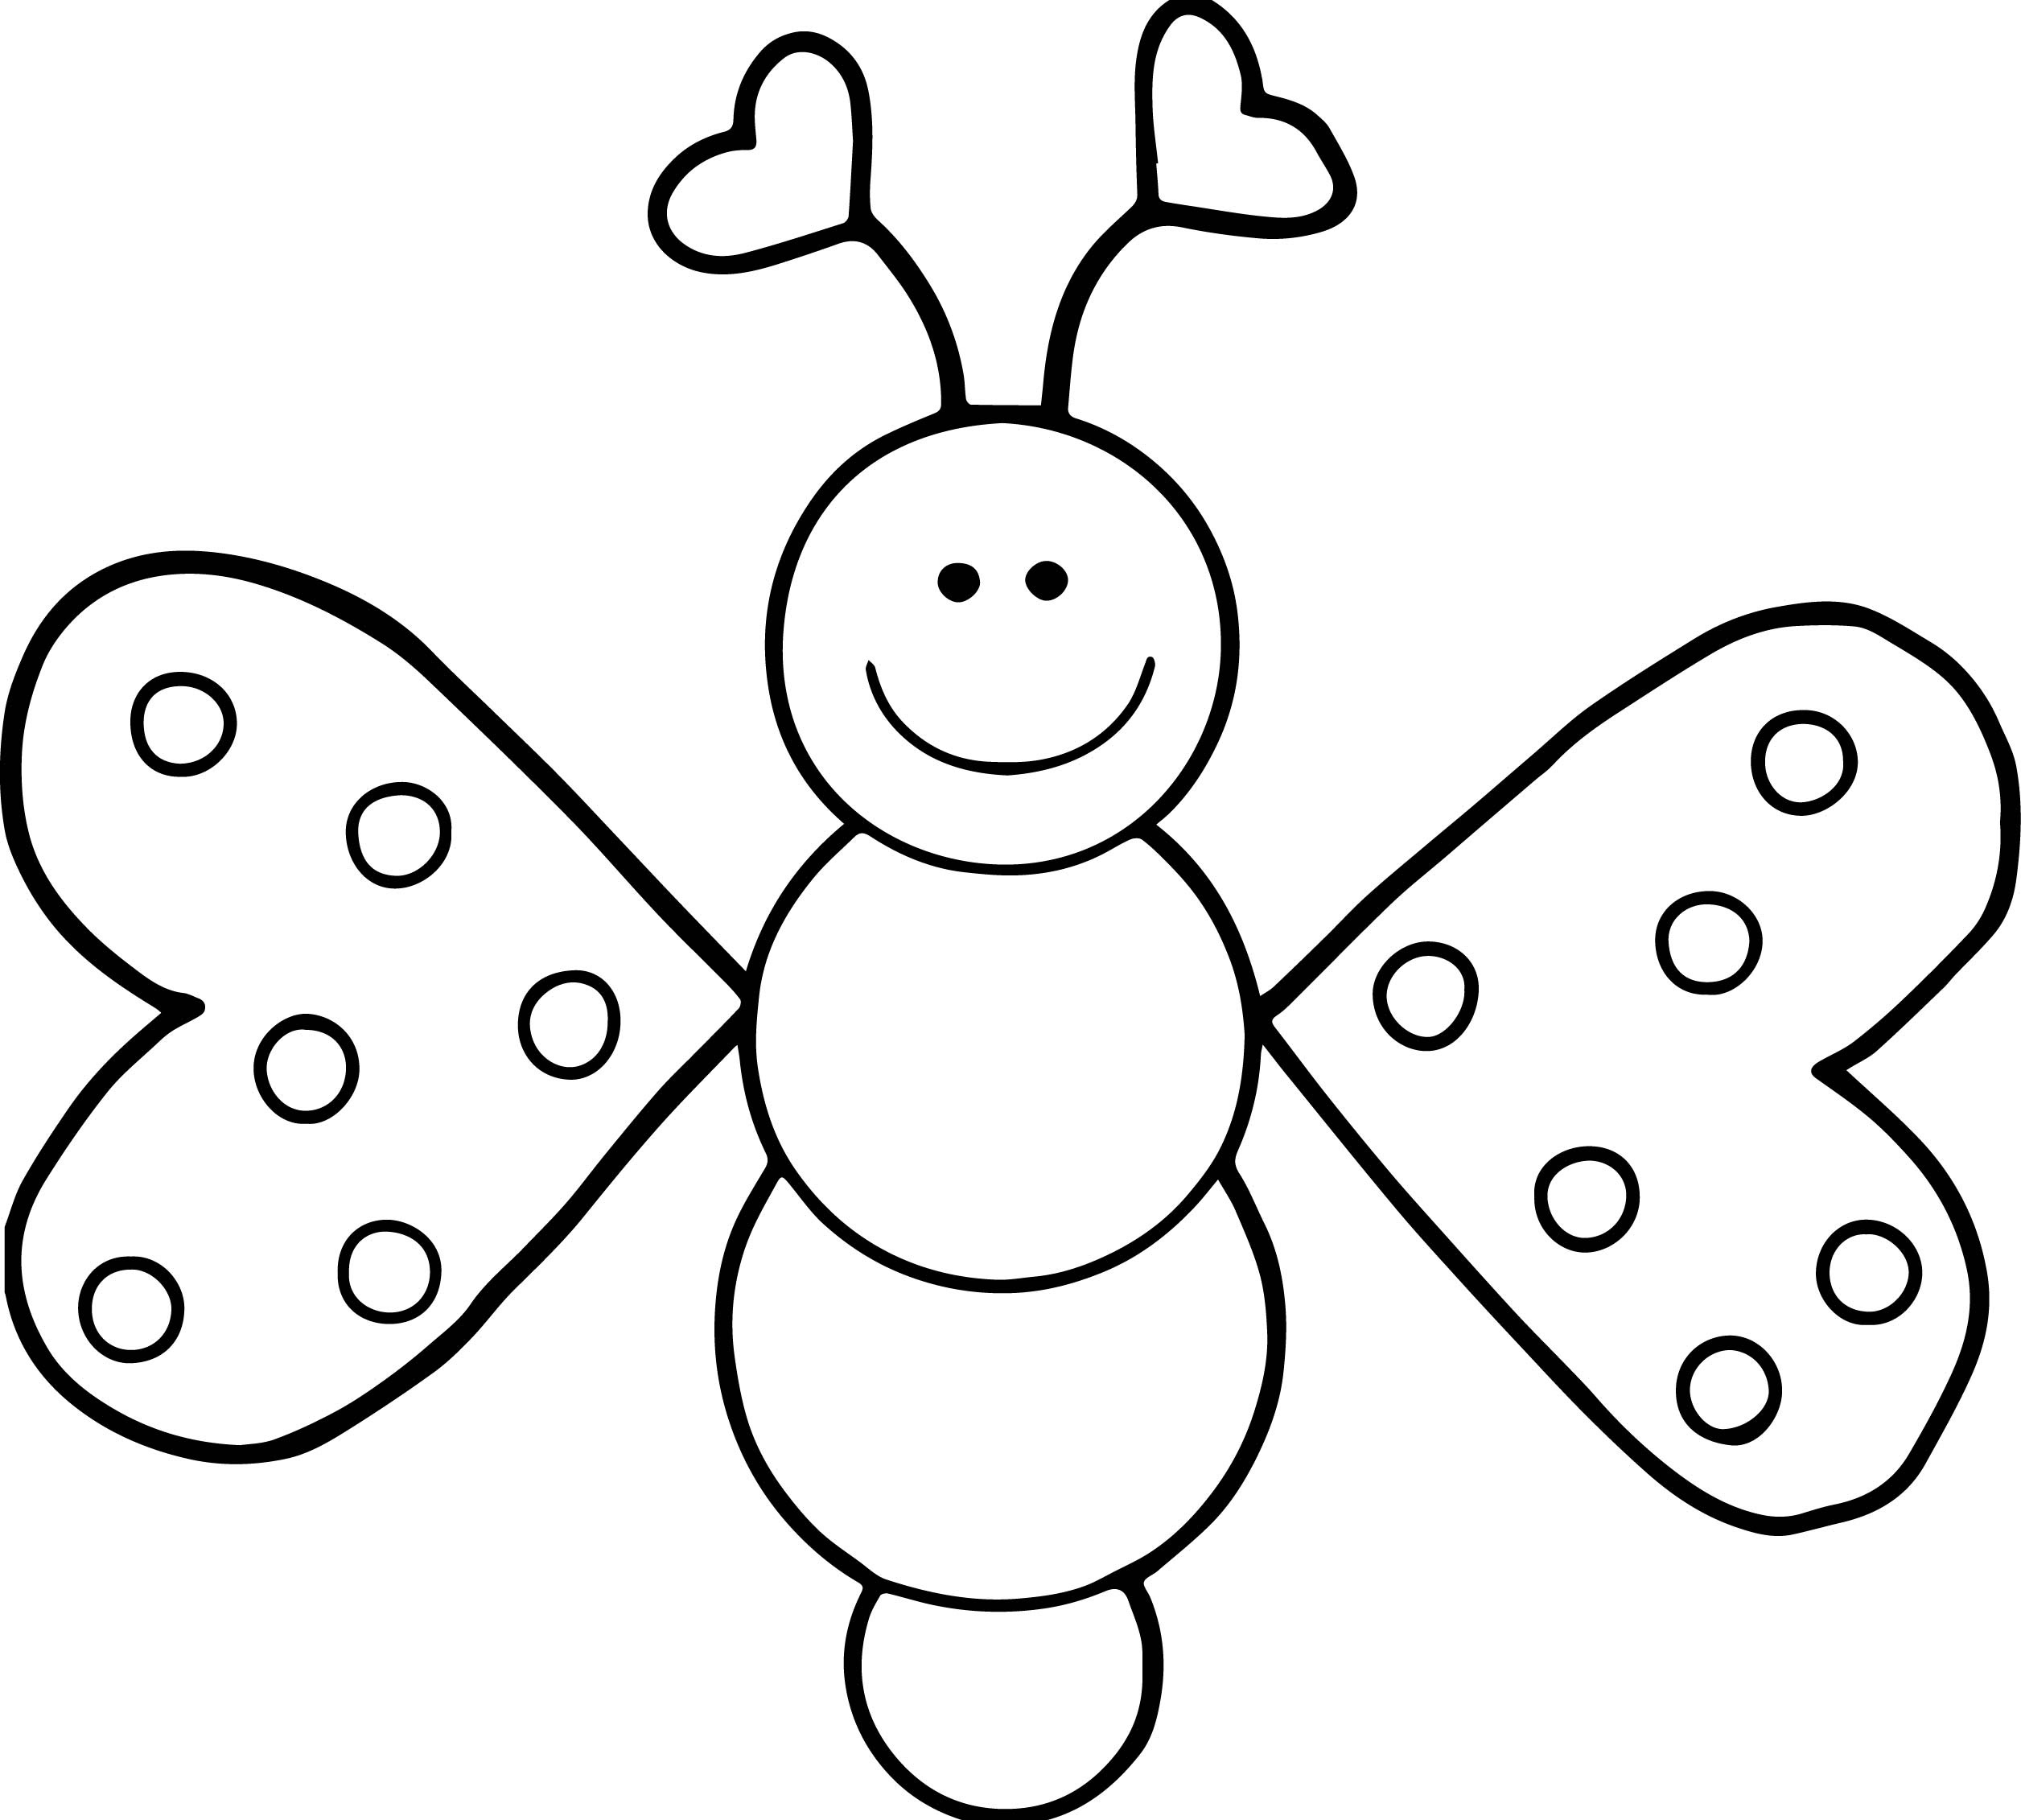 Butterfly Coloring Pages   Free download on ClipArtMag